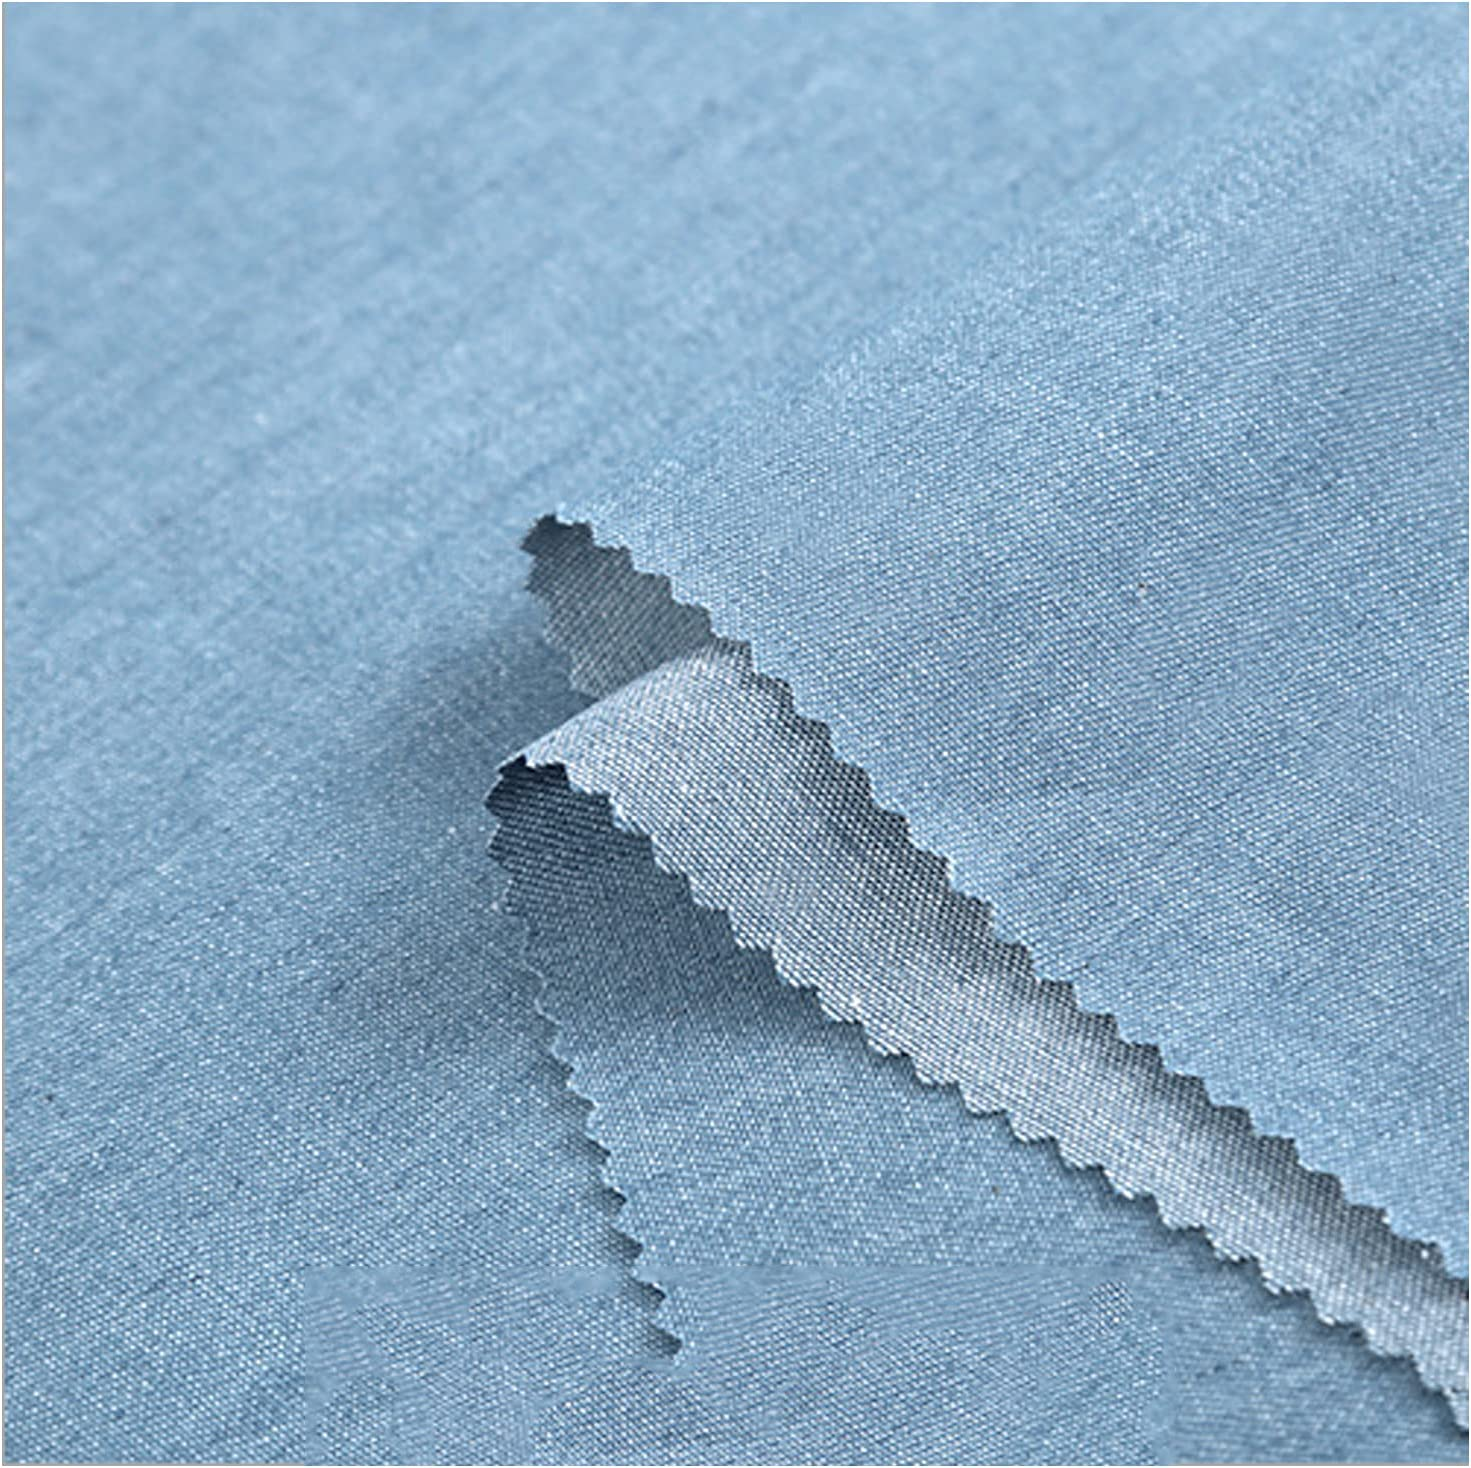 HUSTLE Cotton Denim Omaha Mall Fabric Jeans DIY Craft Sewing Fashion Clothe 2021 autumn and winter new